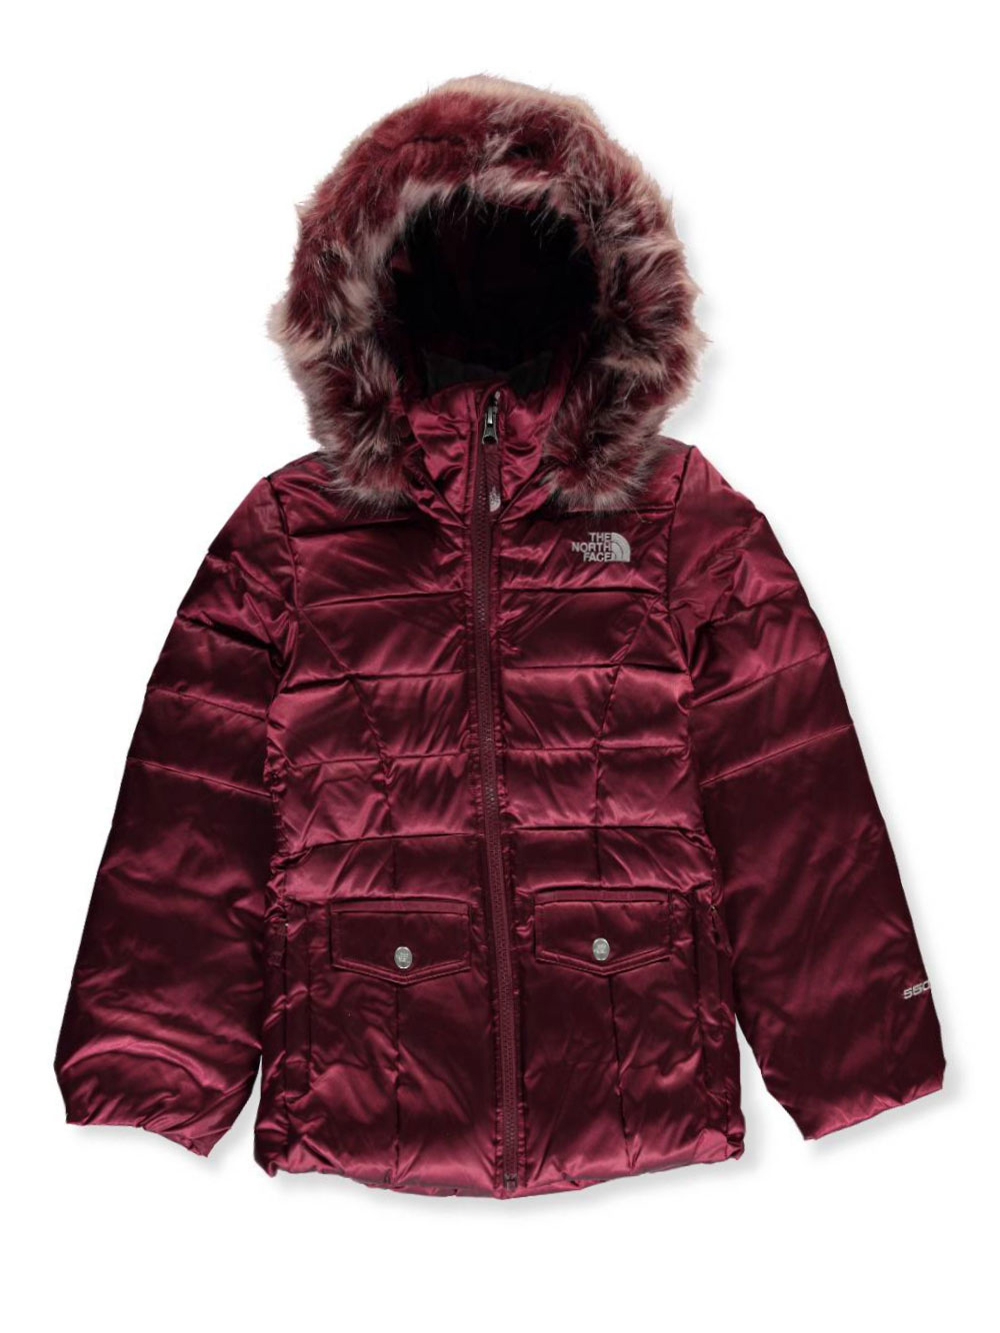 a7b06b29e Big Girls' Gotham 2.0 Down Jacket by The North Face in rabbit gray, tnf  black and zinfandel red from Cookie's Kids